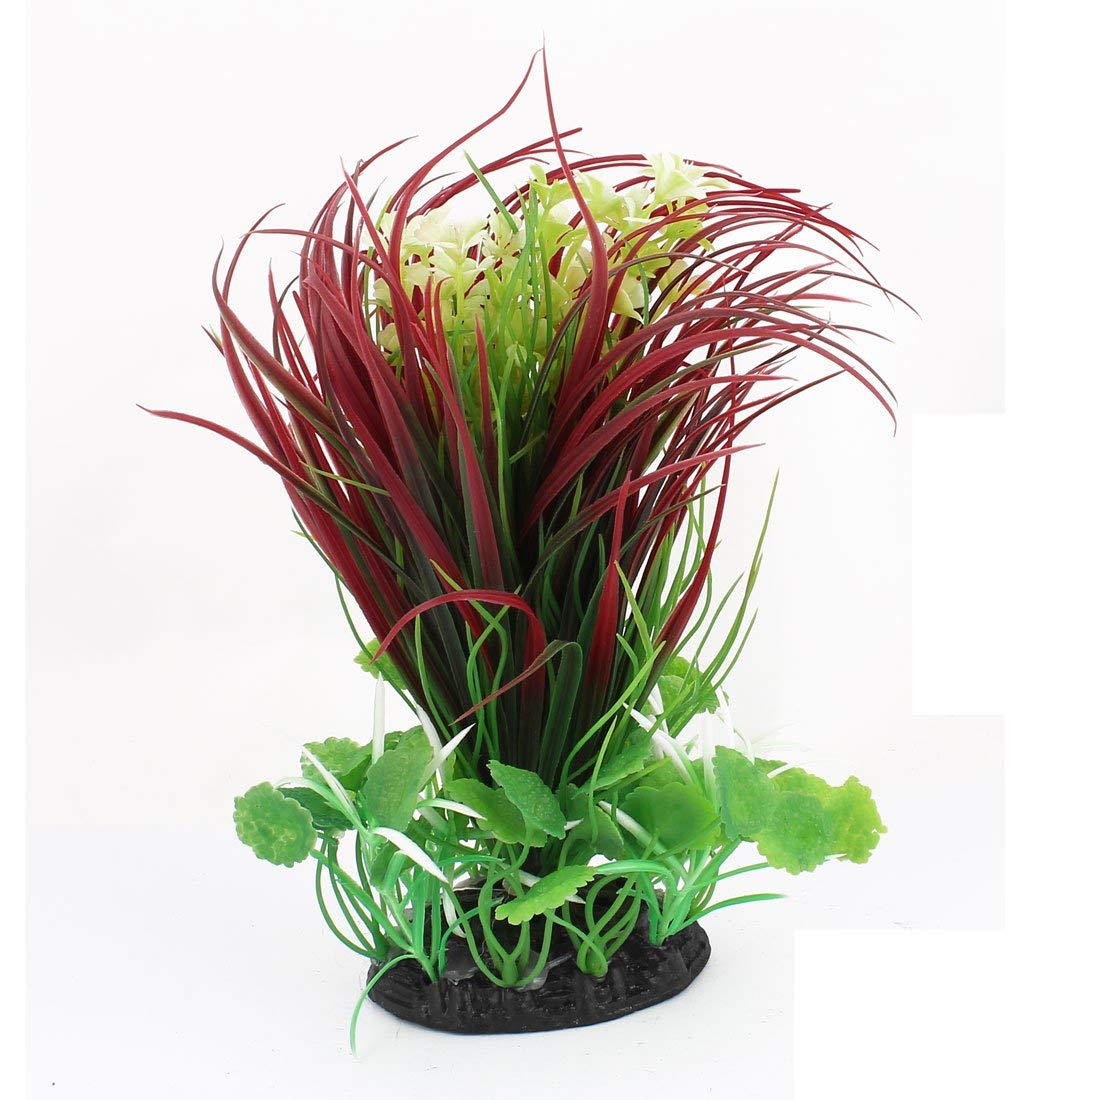 5 Pcs 5.9  Height Plastic Green Water Plants Ornament for Aquarium